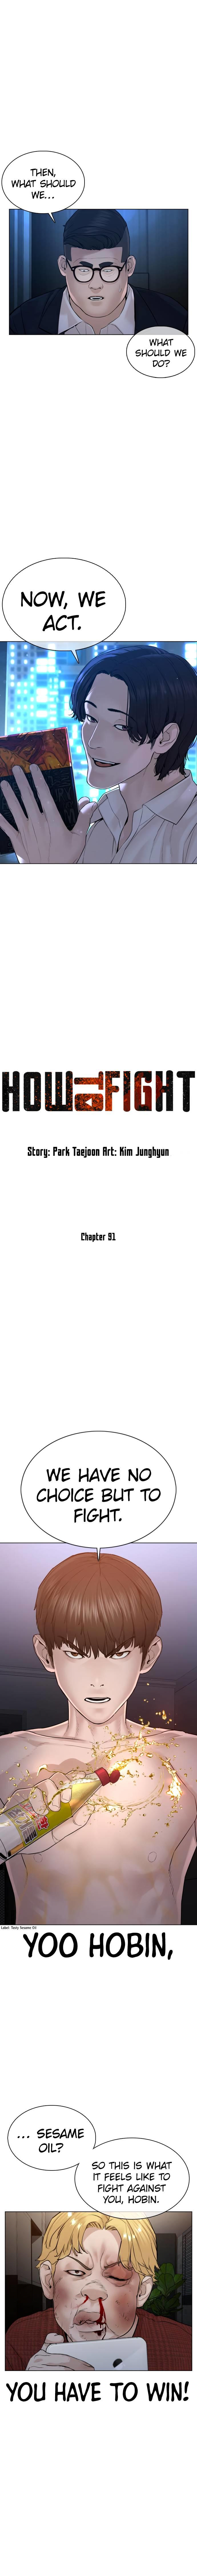 How To Fight Chapter 91 page 2 - Mangakakalots.com